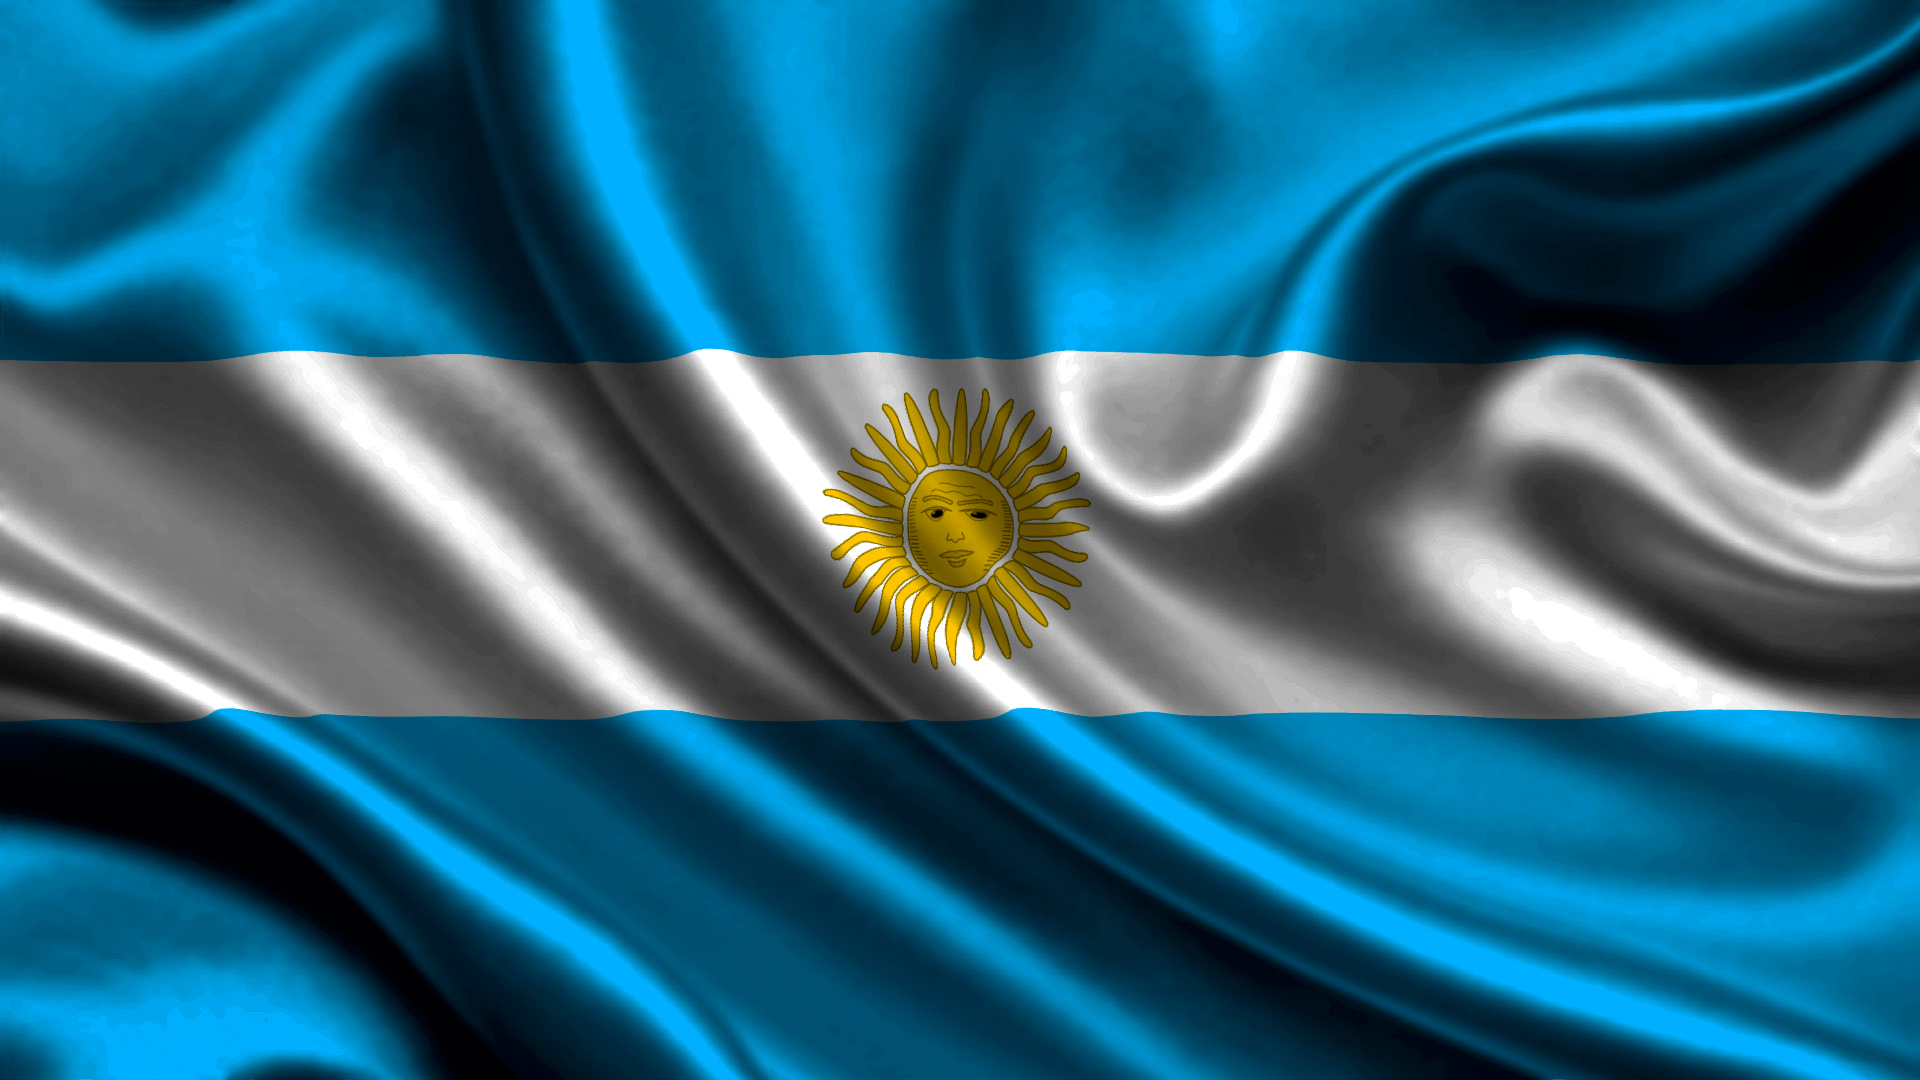 Flag Of Argentina Hd Wallpaper Background Image 1920x1080 Id